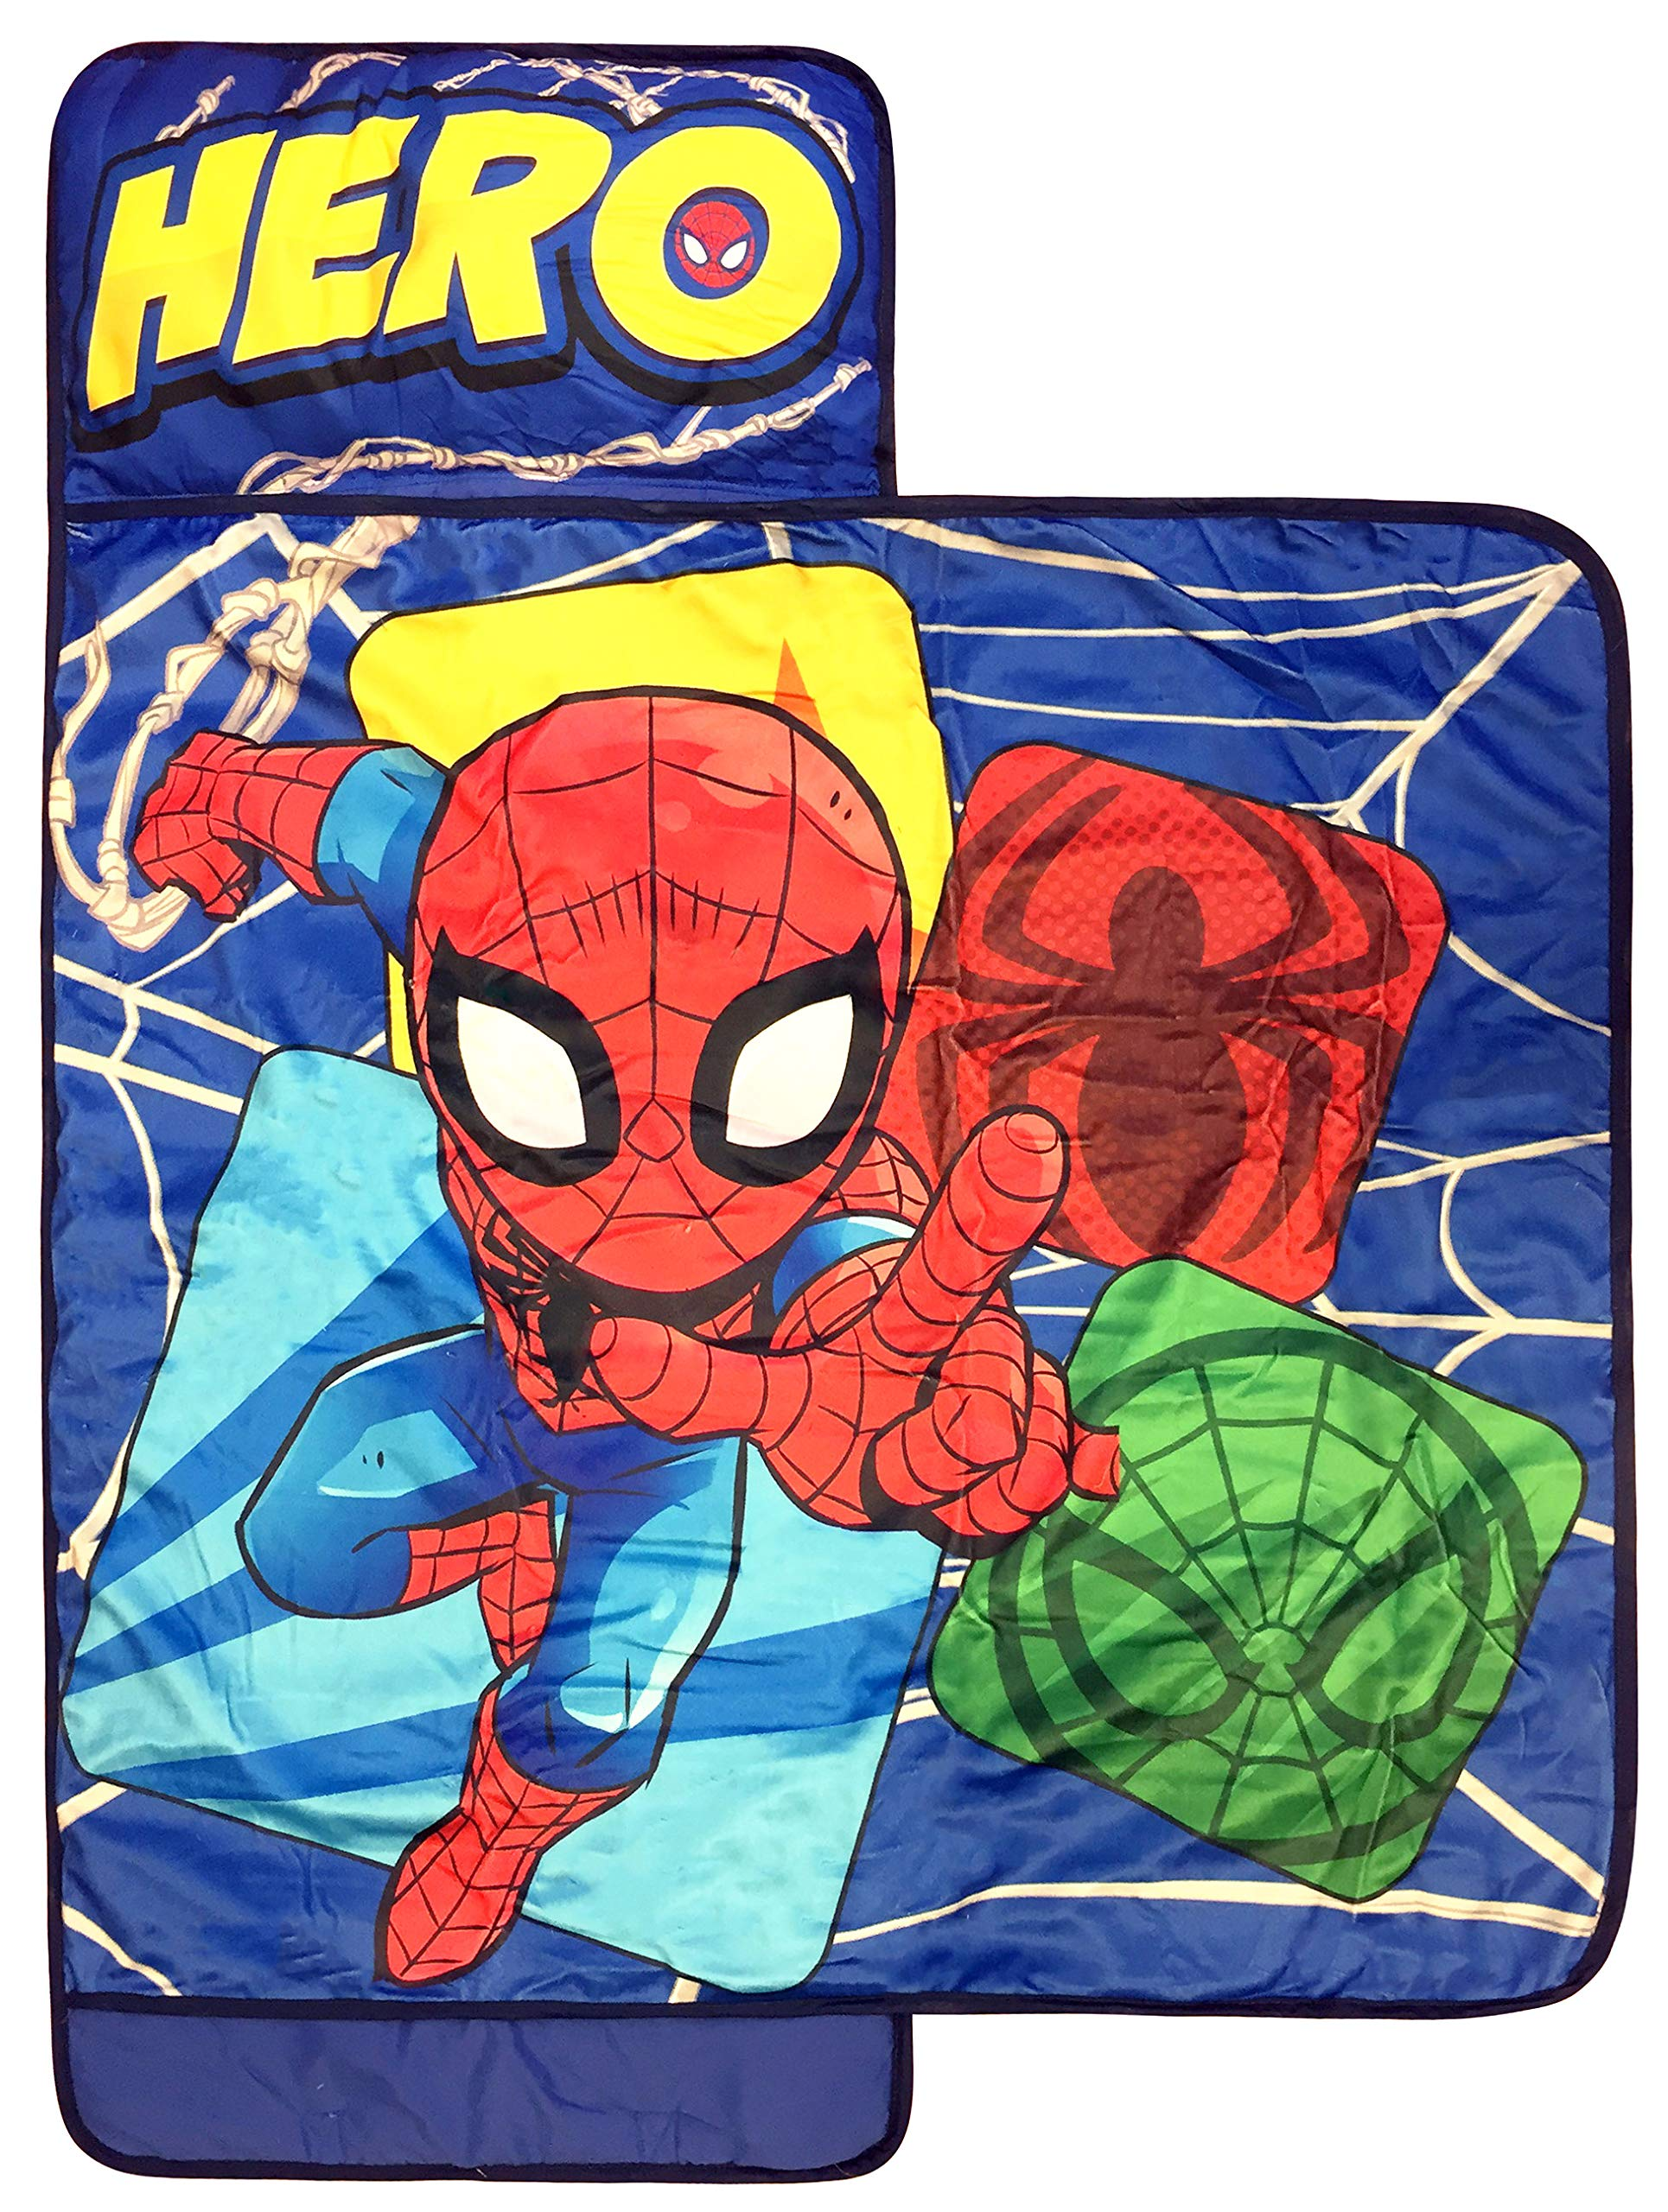 Marvel Spiderman Spidey Squares Nap Mat - Built-in Pillow and Blanket - Super Soft Microfiber Kids'/Toddler/Children's Bedding, Ages 3-7 (Official Marvel Product) by Jay Franco (Image #1)